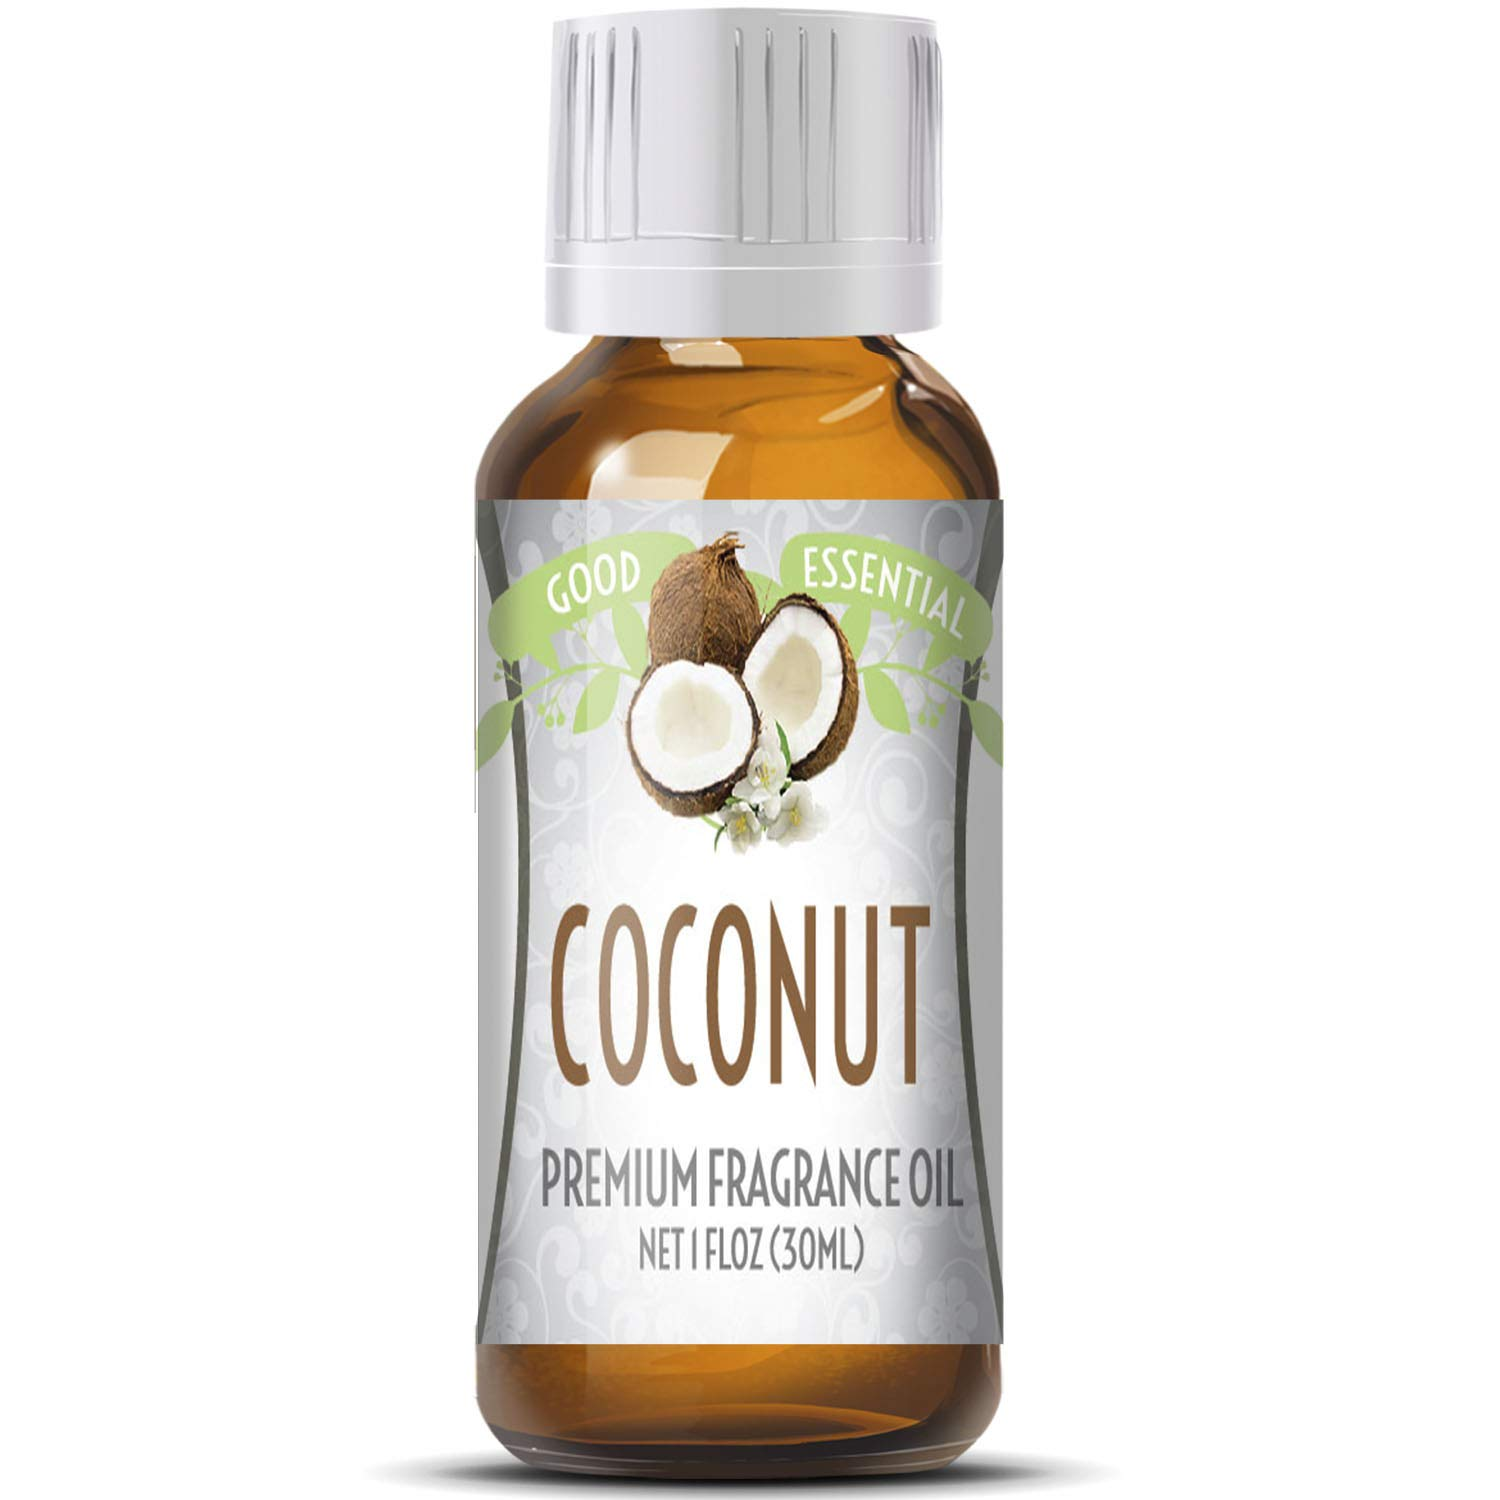 Coconut Scented Oil by Good Essential (Huge 1oz Bottle - Premium Grade Fragrance Oil) - Perfect for Aromatherapy, Soaps, Candles, Slime, Lotions, and More!